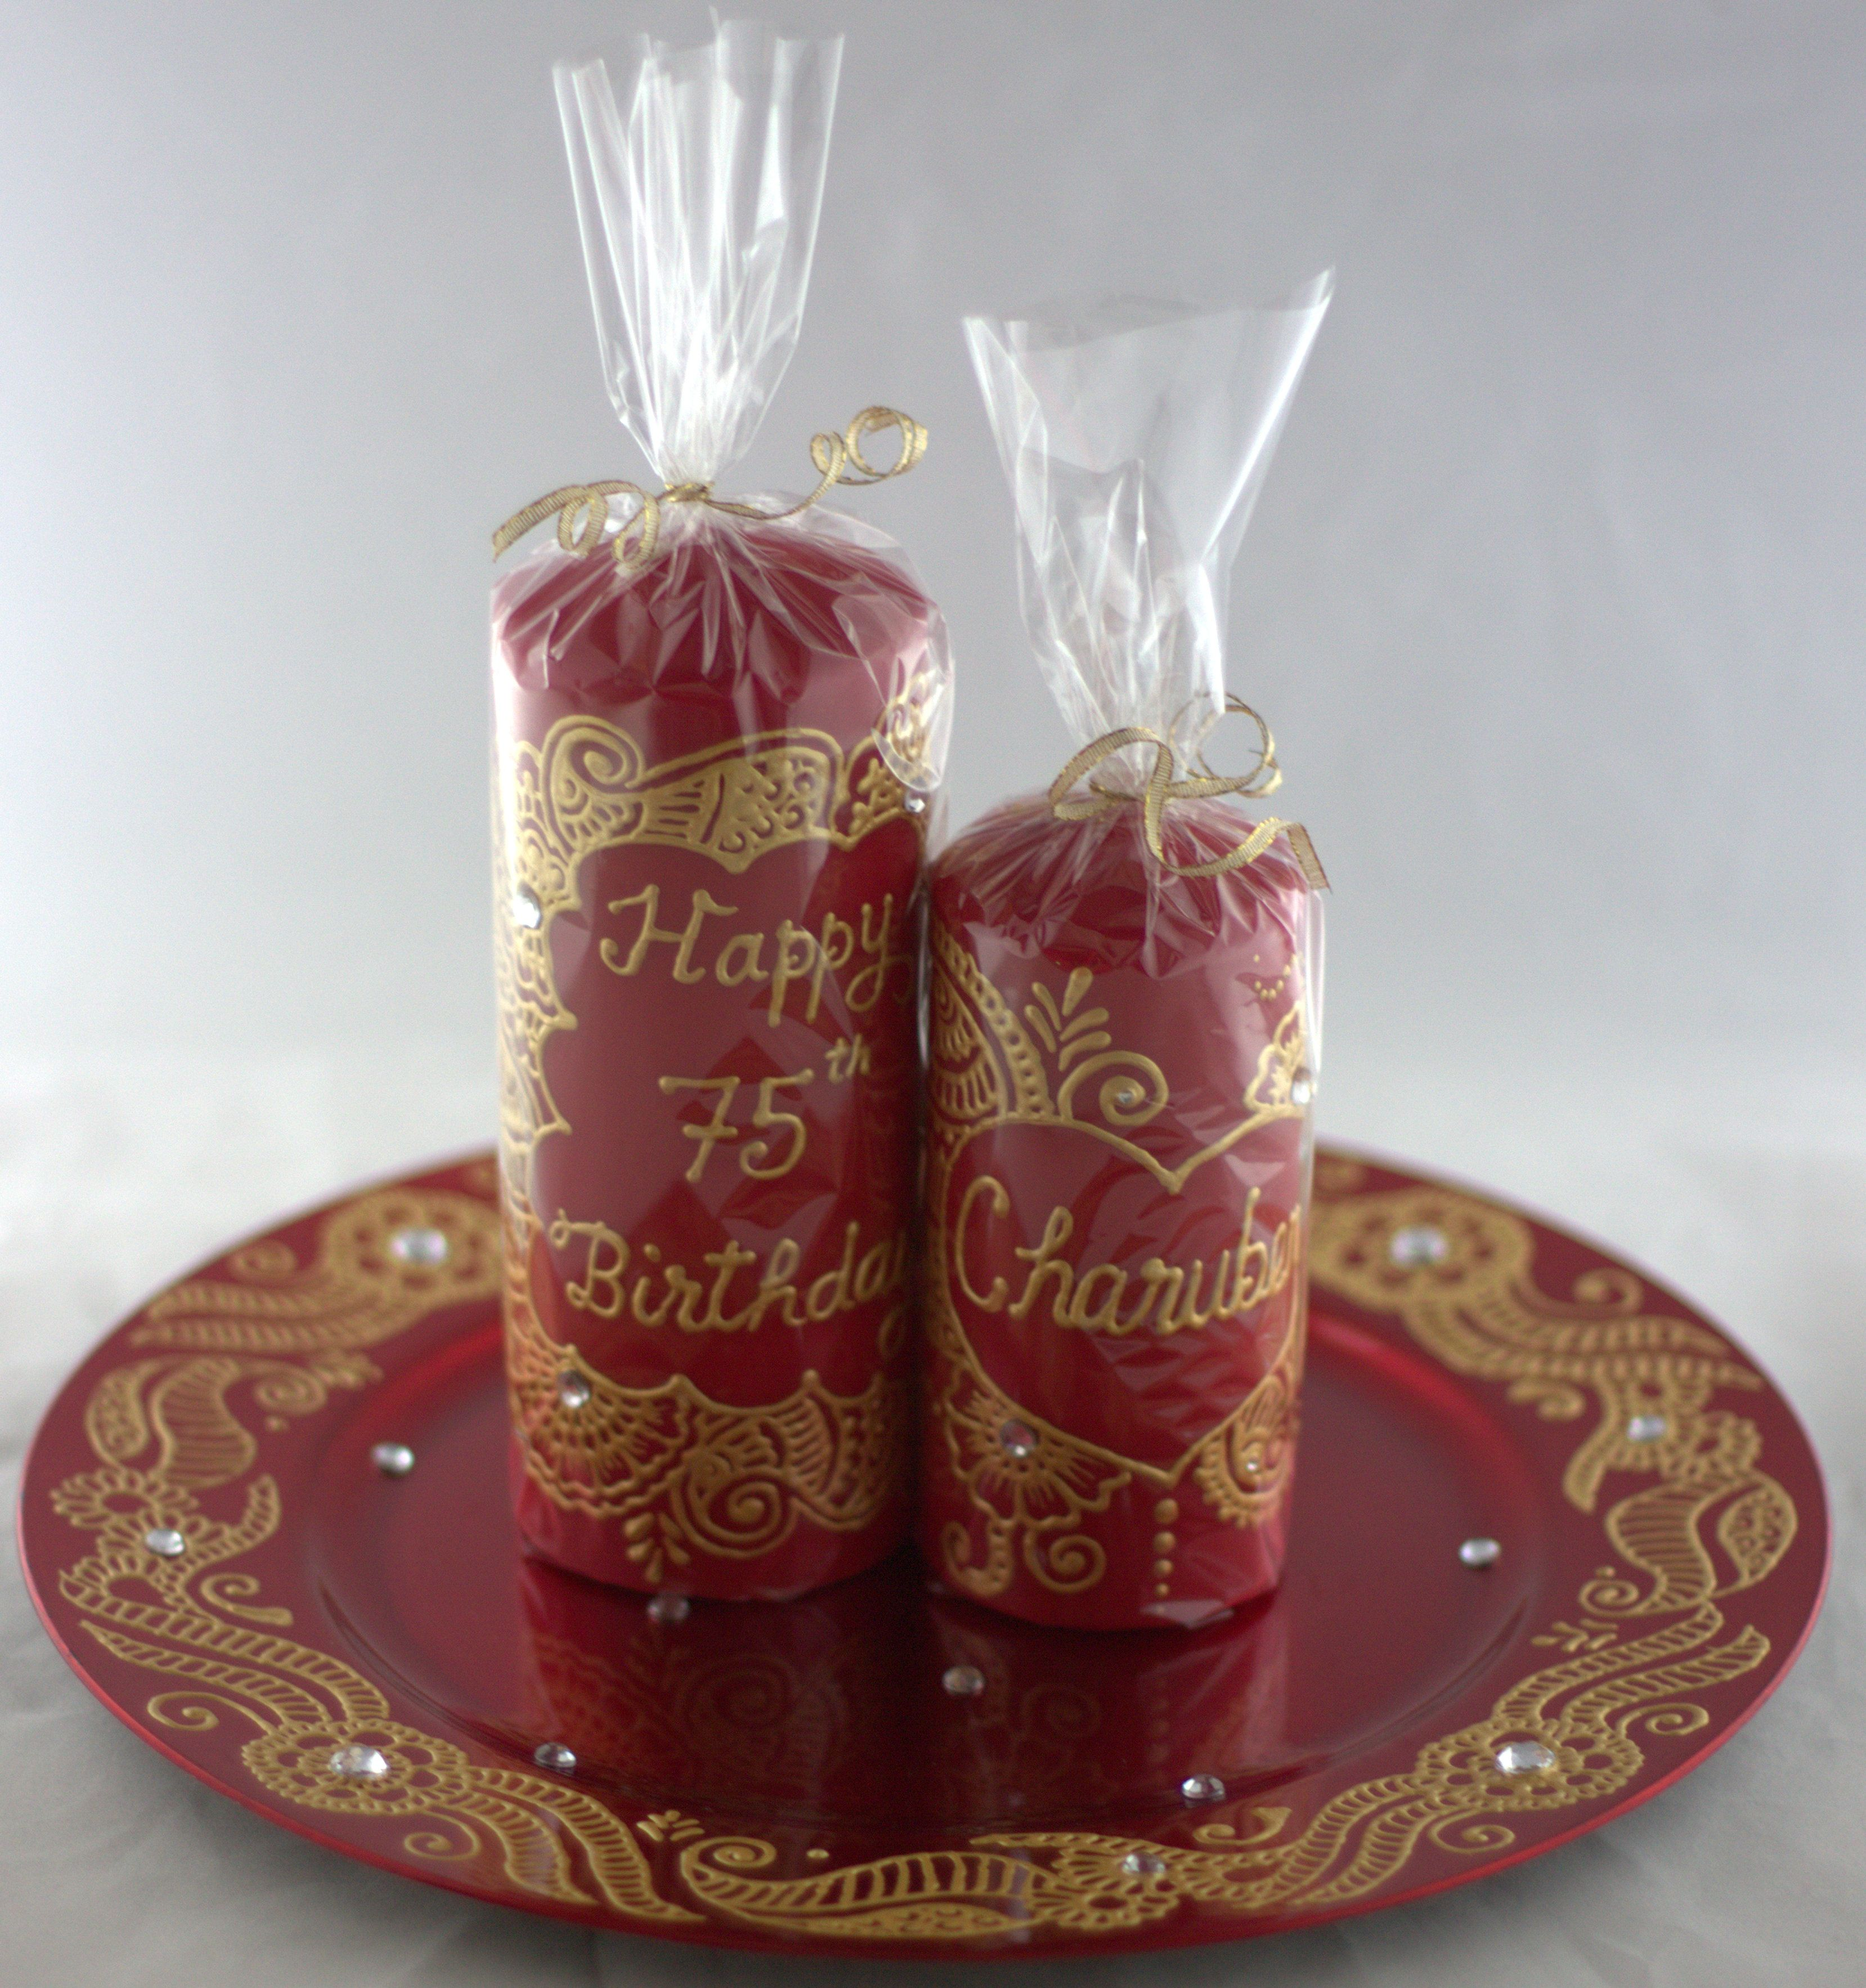 Henna Candle Gift Set Henna Harmony Candles And Plates Candles